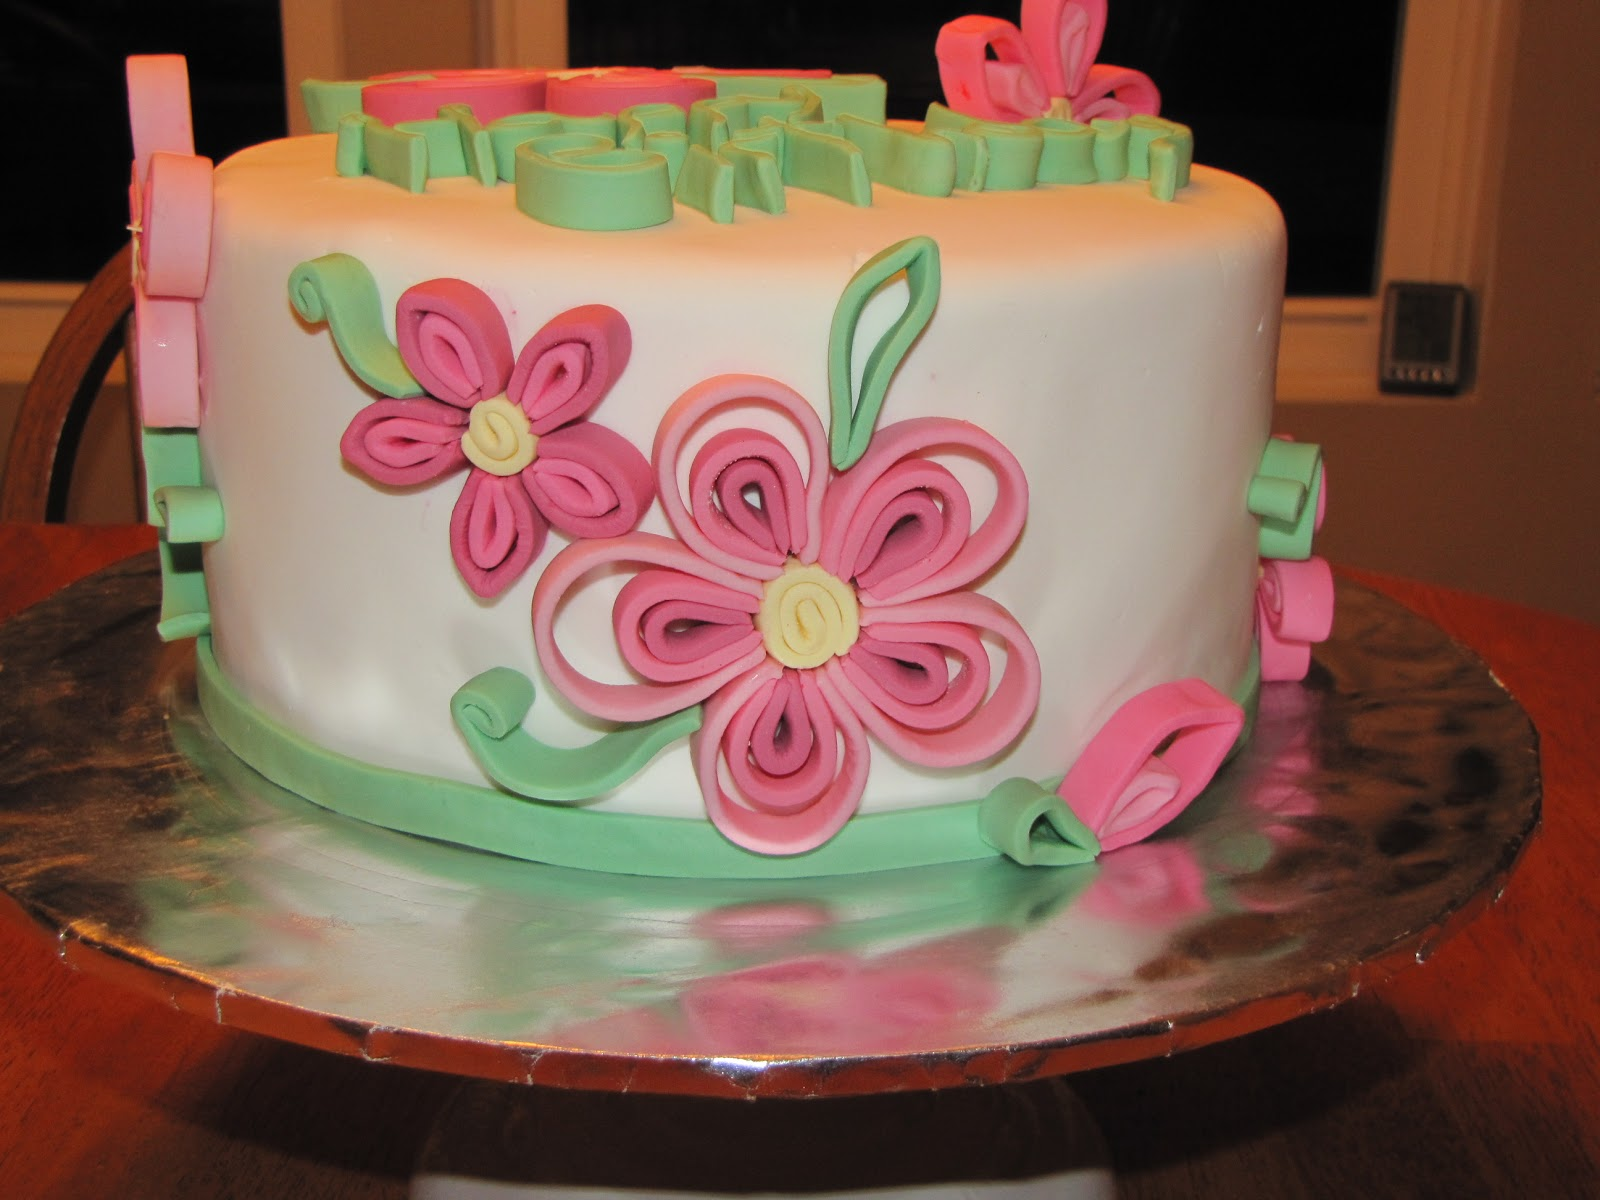 Cake was fun chocolate cake with ganache filling quilled flowers